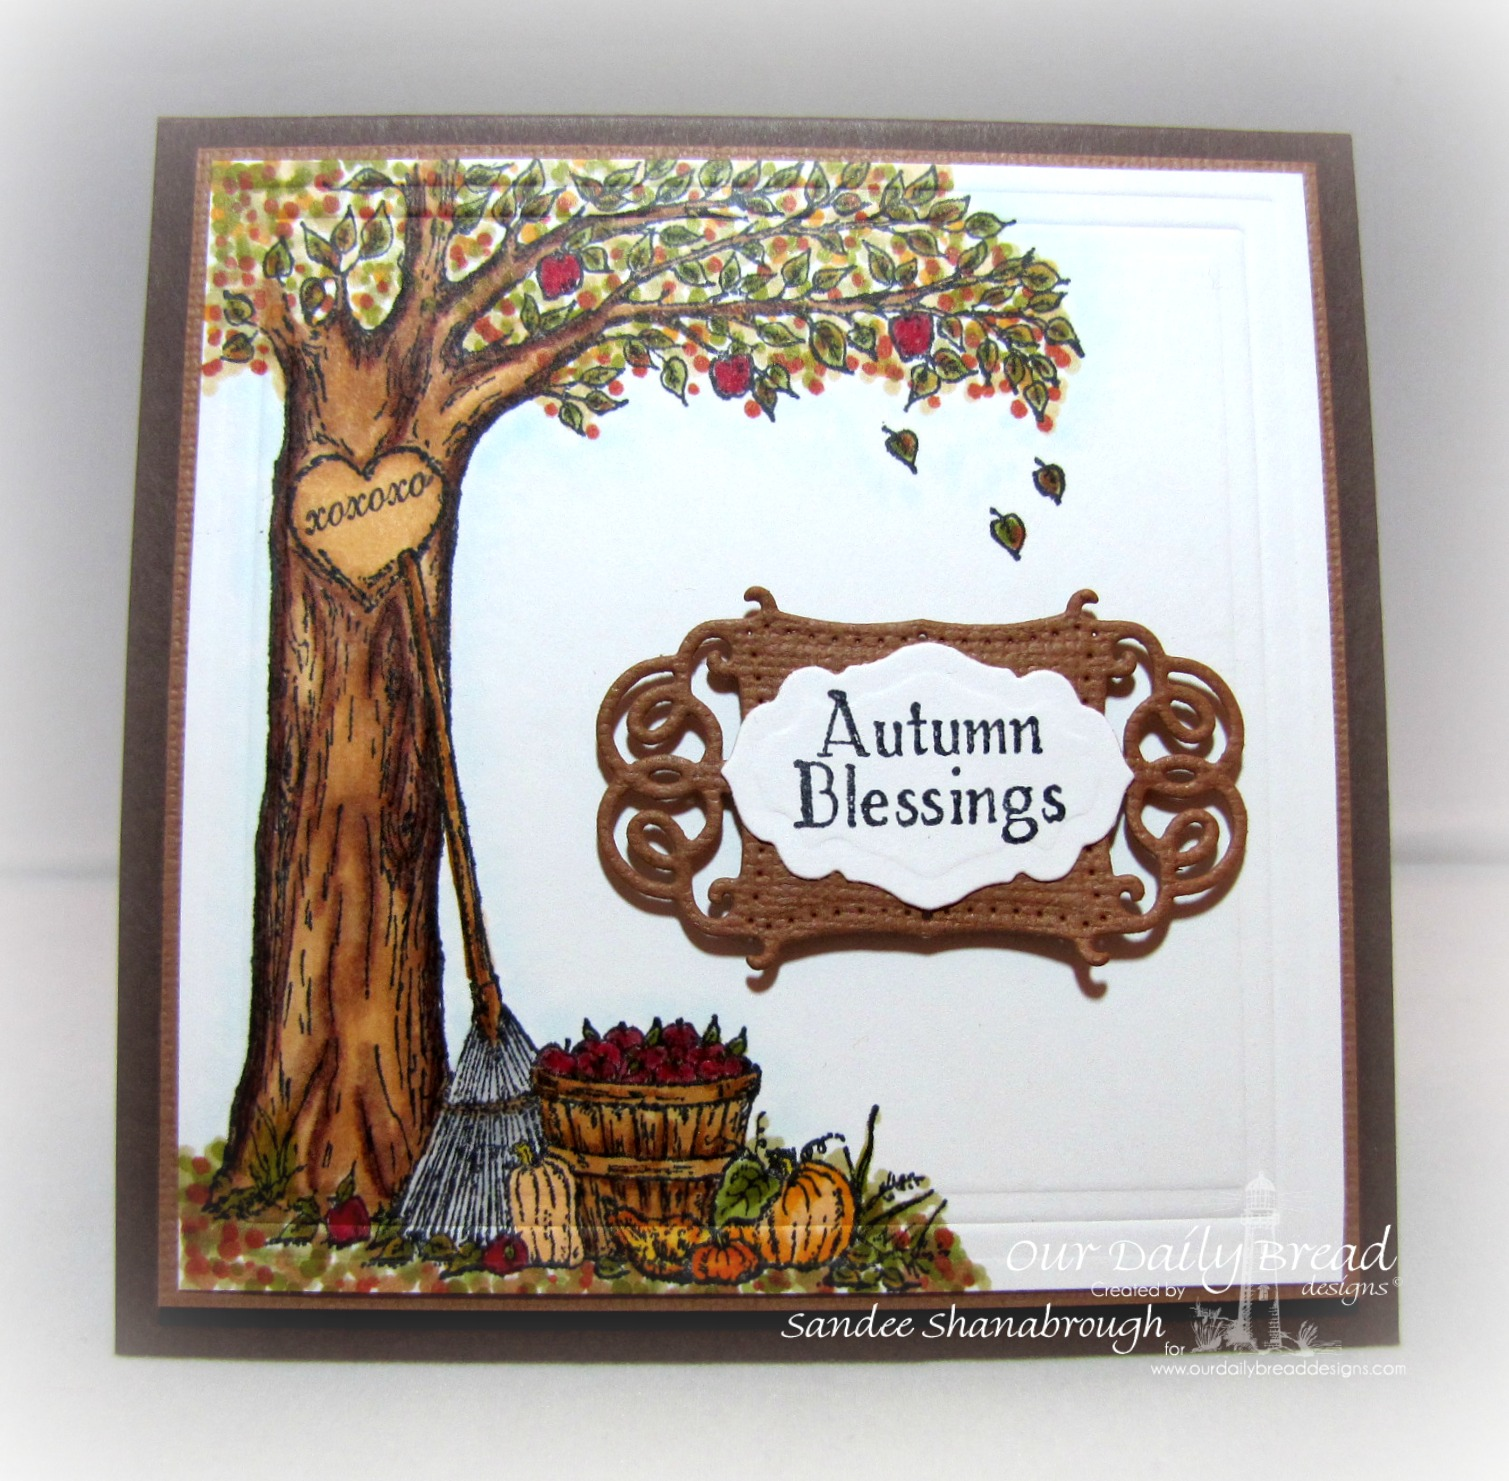 Stamps - Our Daily Bread Designs Autumn Tree, ODBD Custom Antique Labels and Border Dies, ODBD Custom Vintage Flourish Pattern Dies